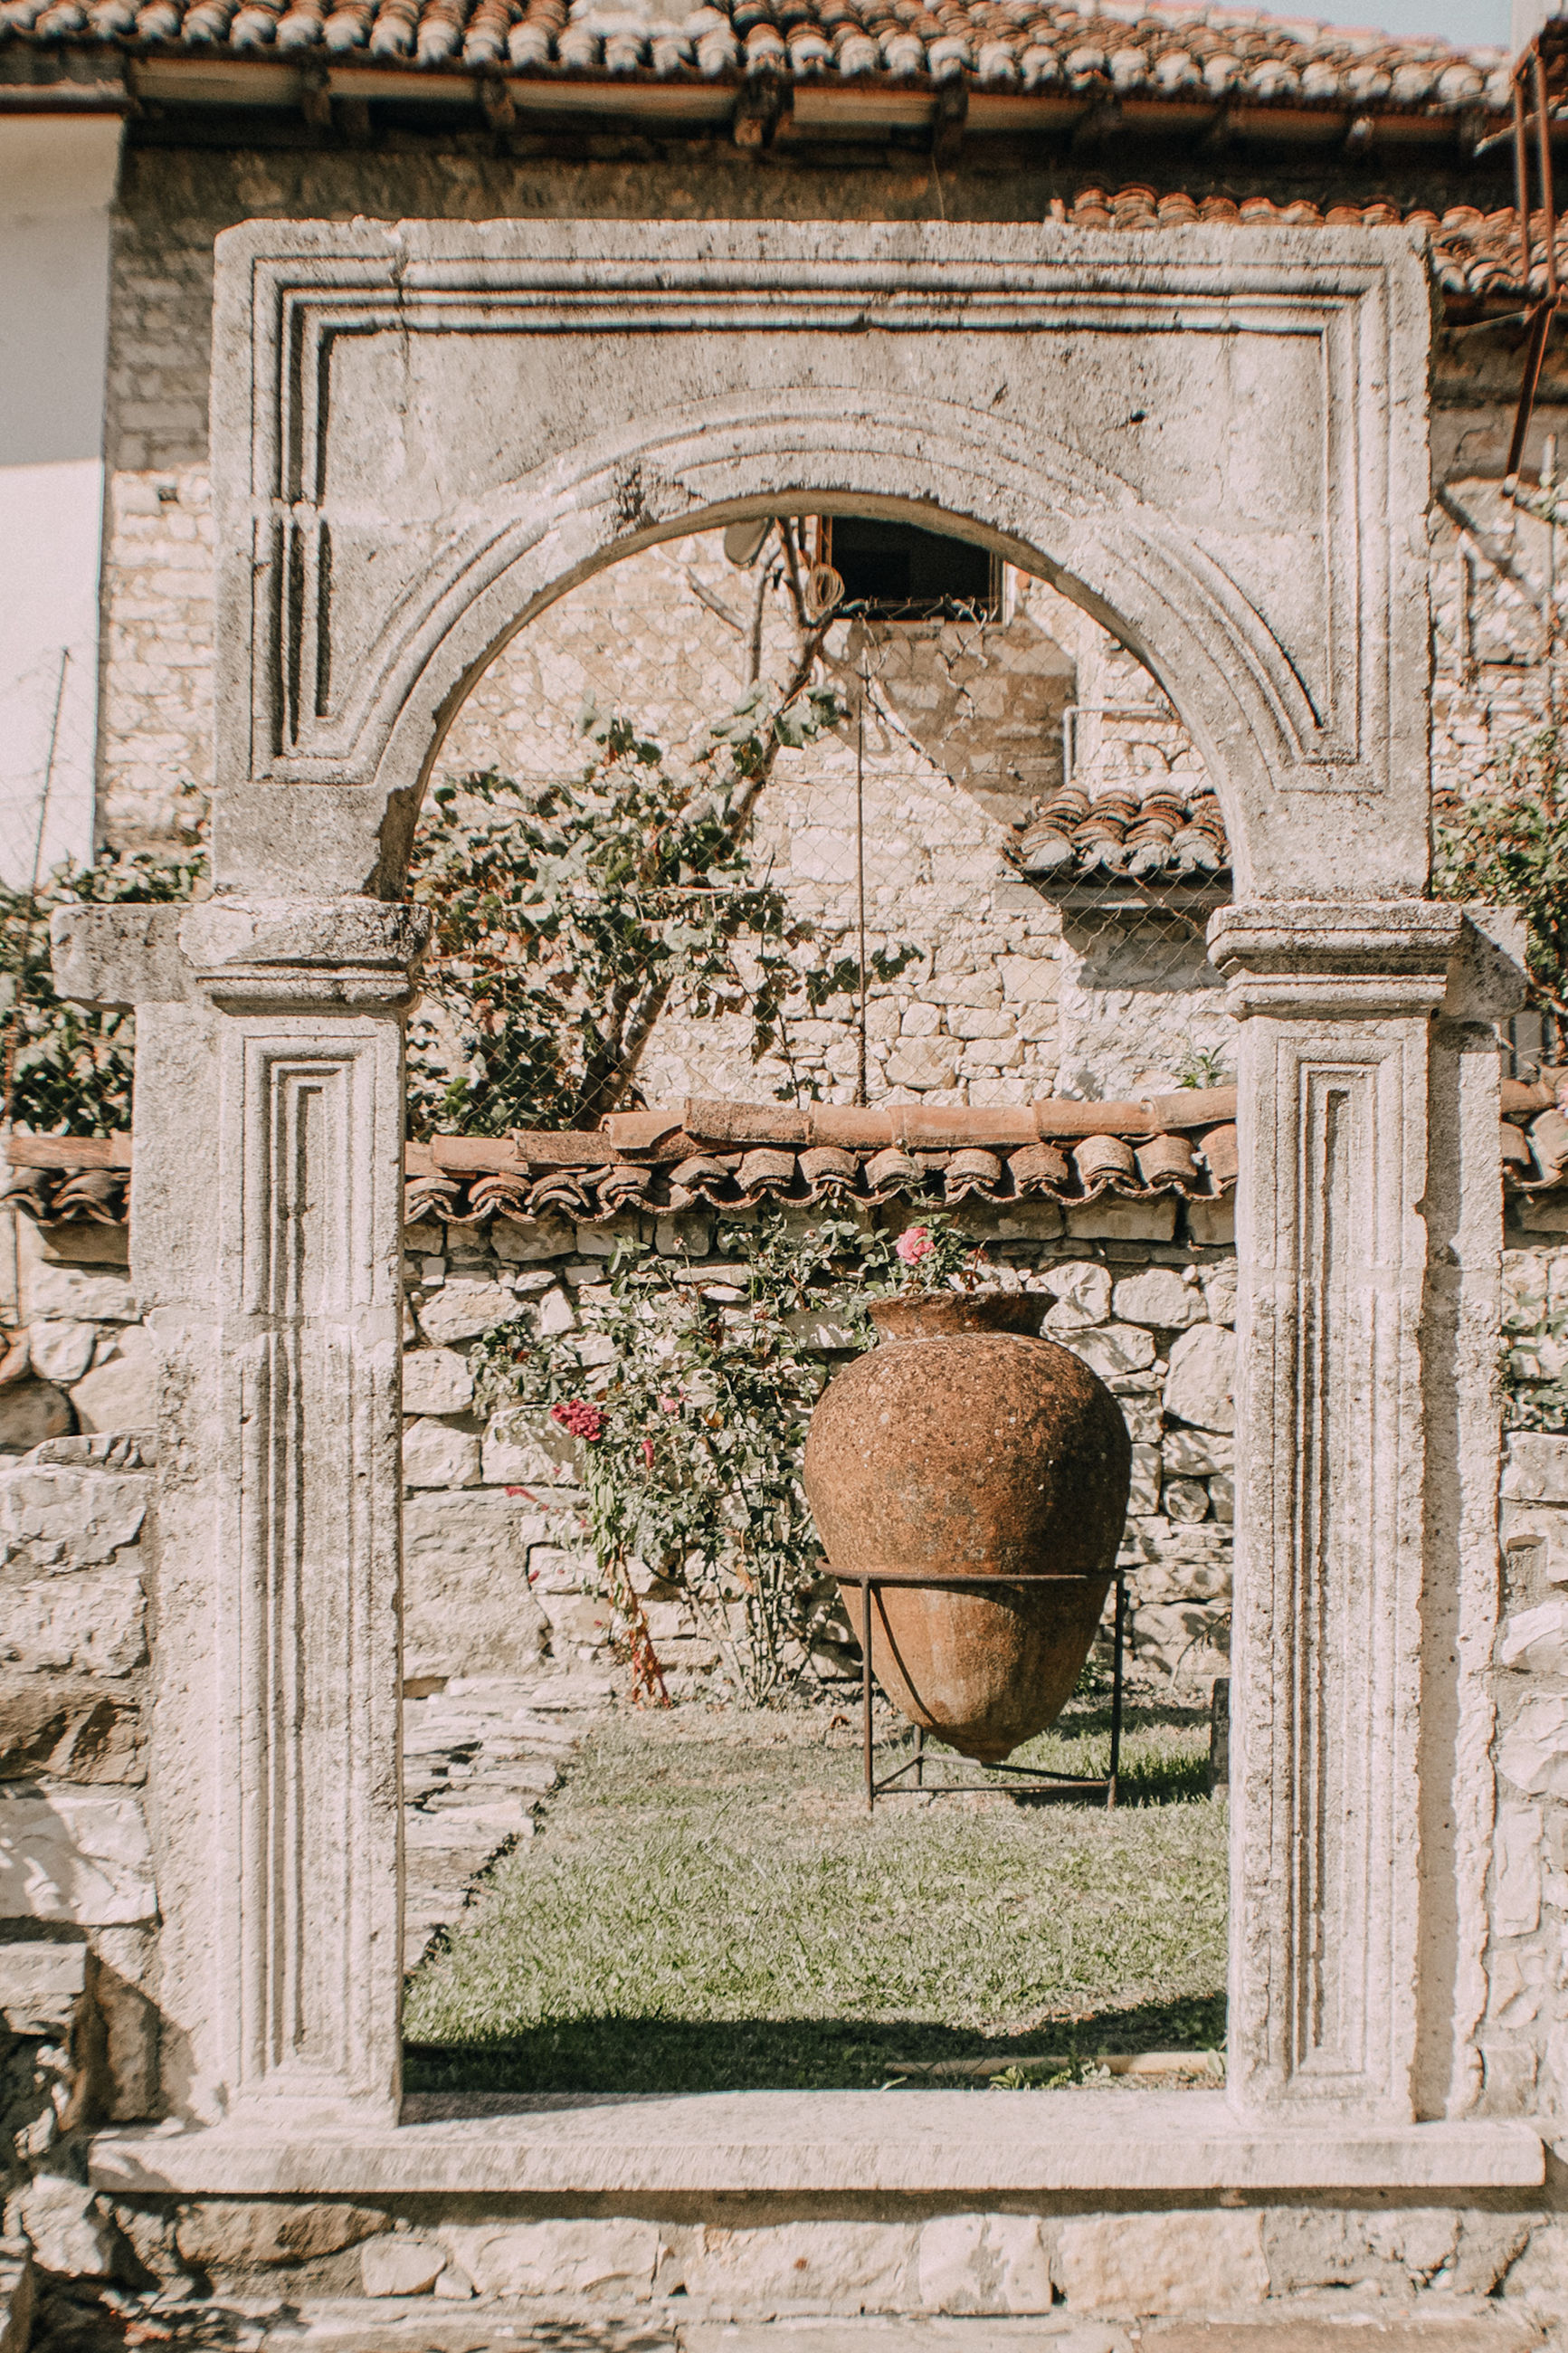 architecture, arch, built structure, building exterior, history, day, the past, no people, building, nature, outdoors, old, travel destinations, plant, ancient, tourism, travel, tree, wall, stone material, ornate, courtyard, electric lamp